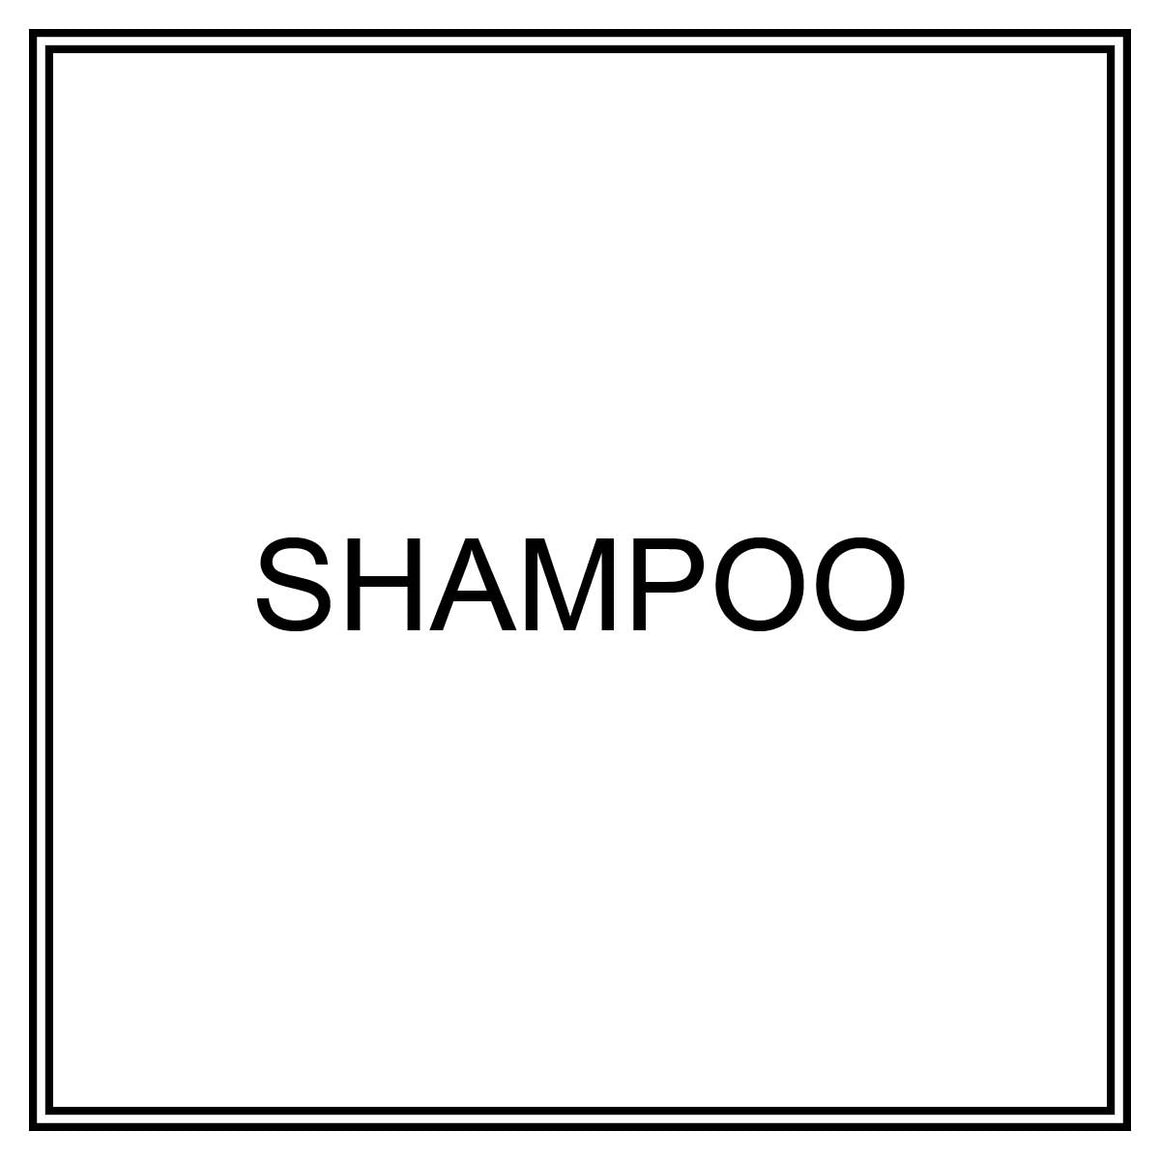 Label - Shampoo